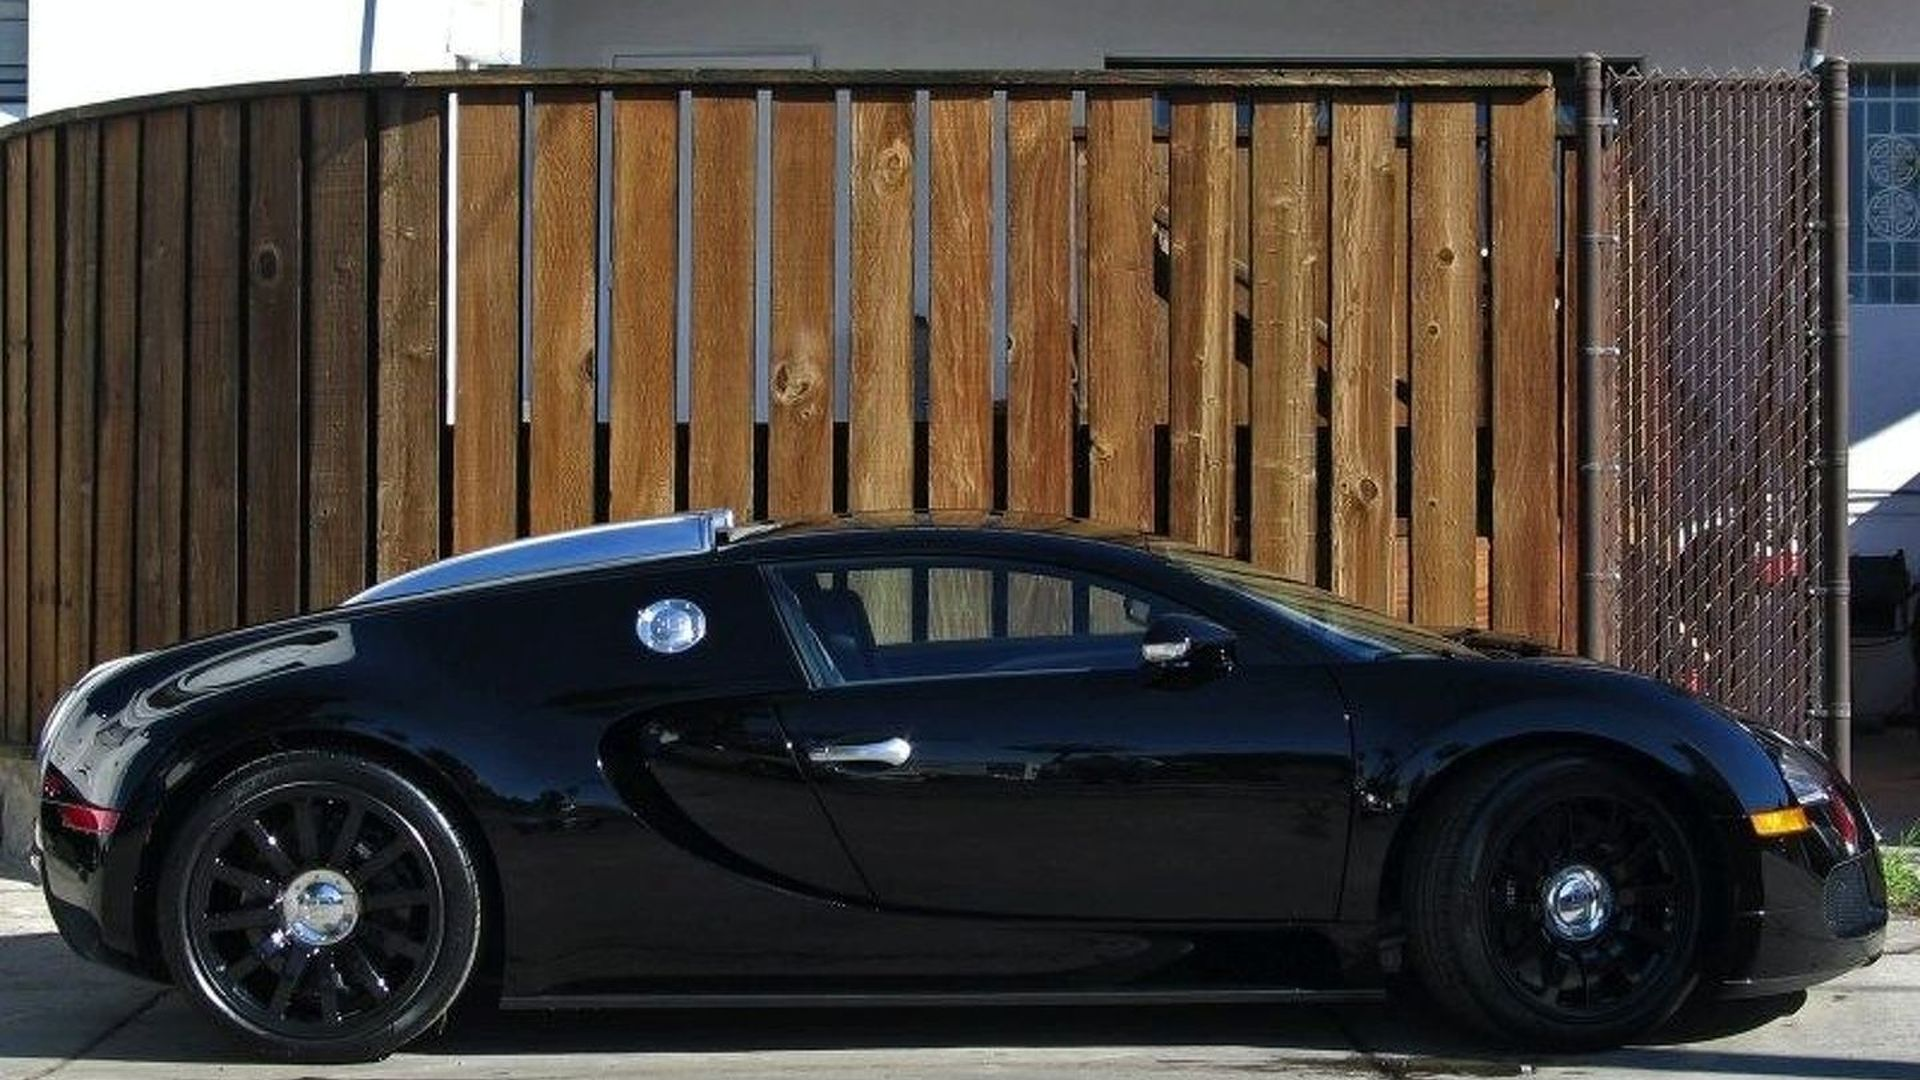 Jet Black Bugatti Veyron for Sale on eBay